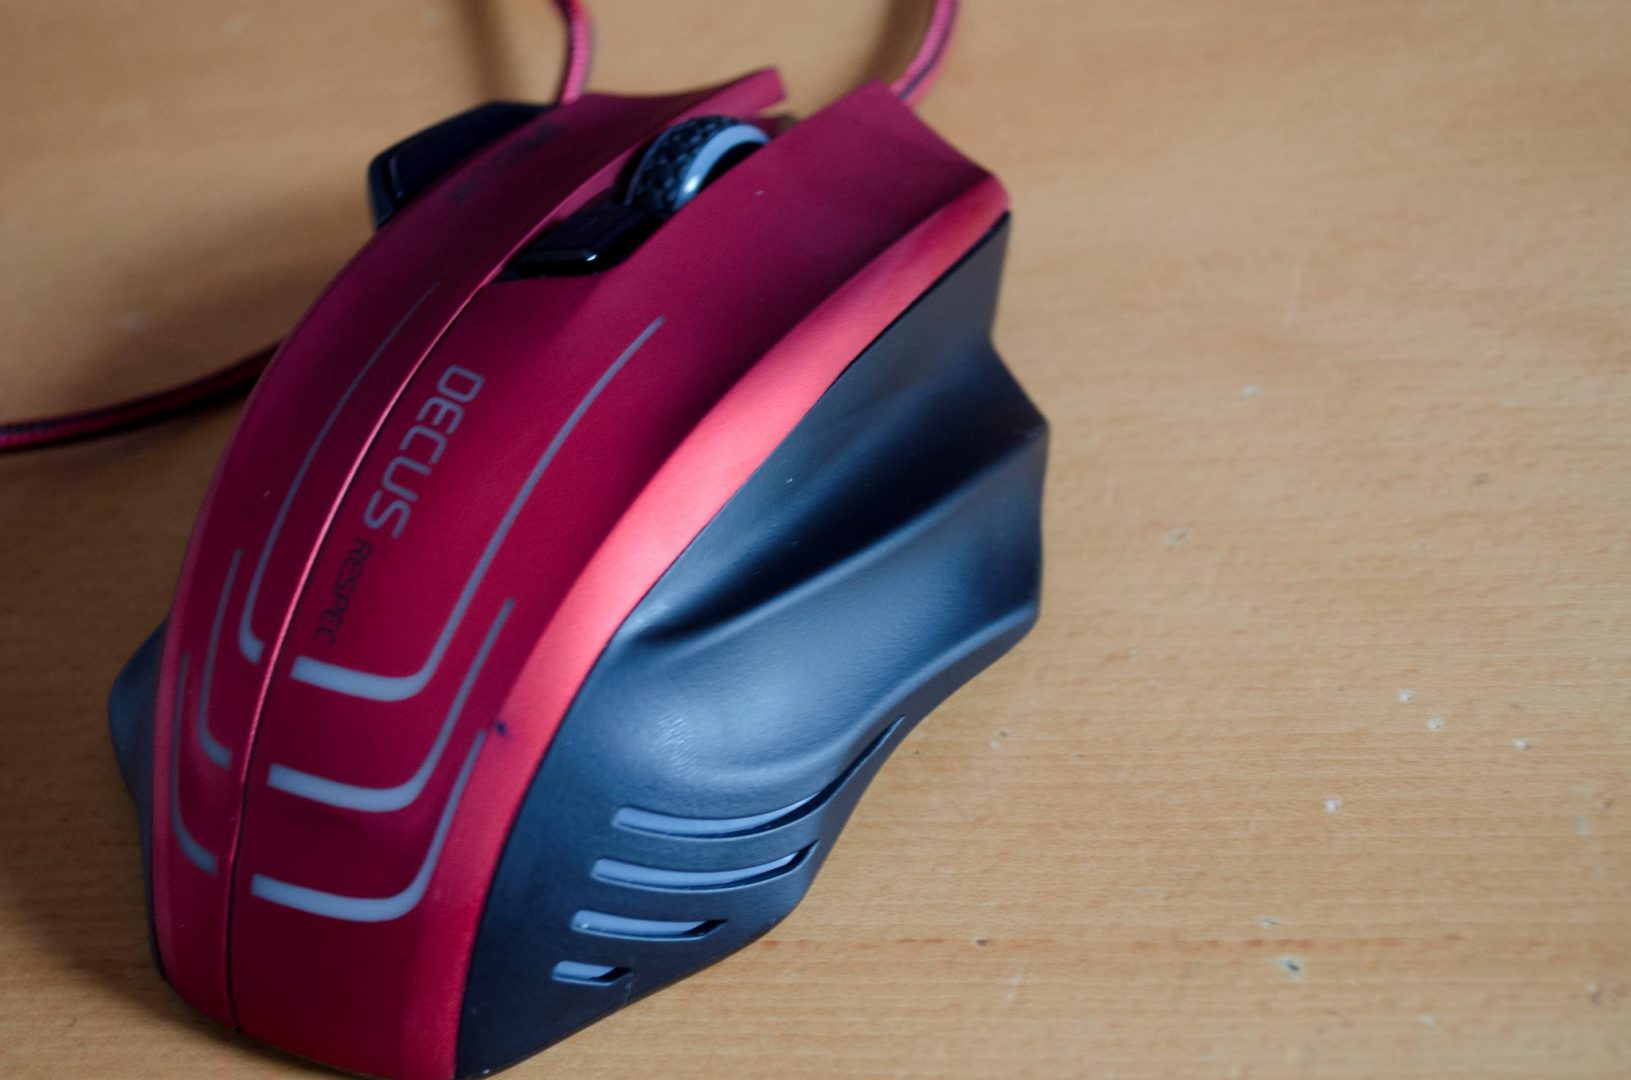 speedlink decus respec gaming mouse review_5